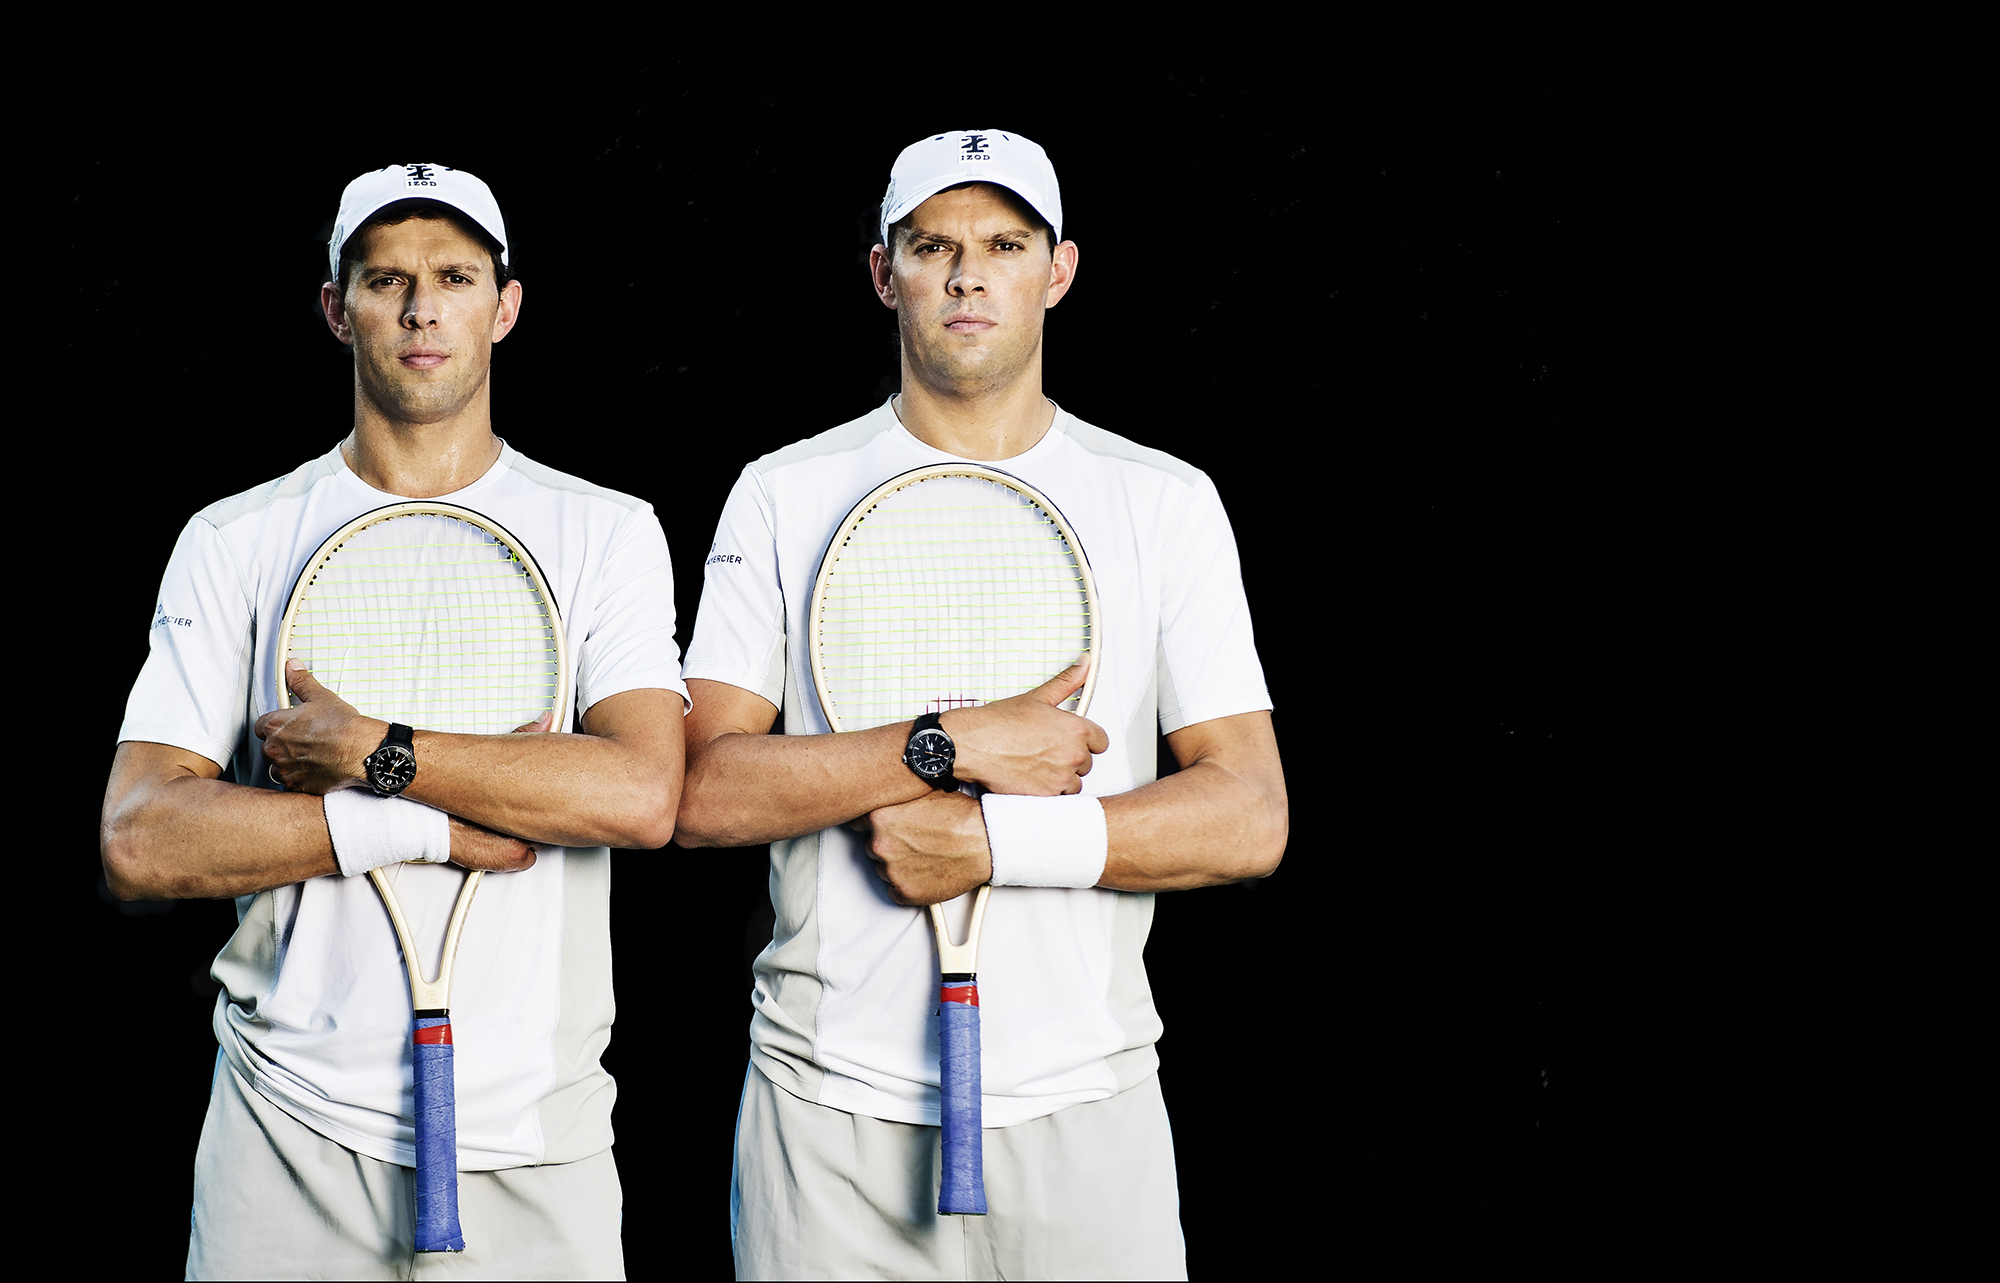 BryanBrothers_02